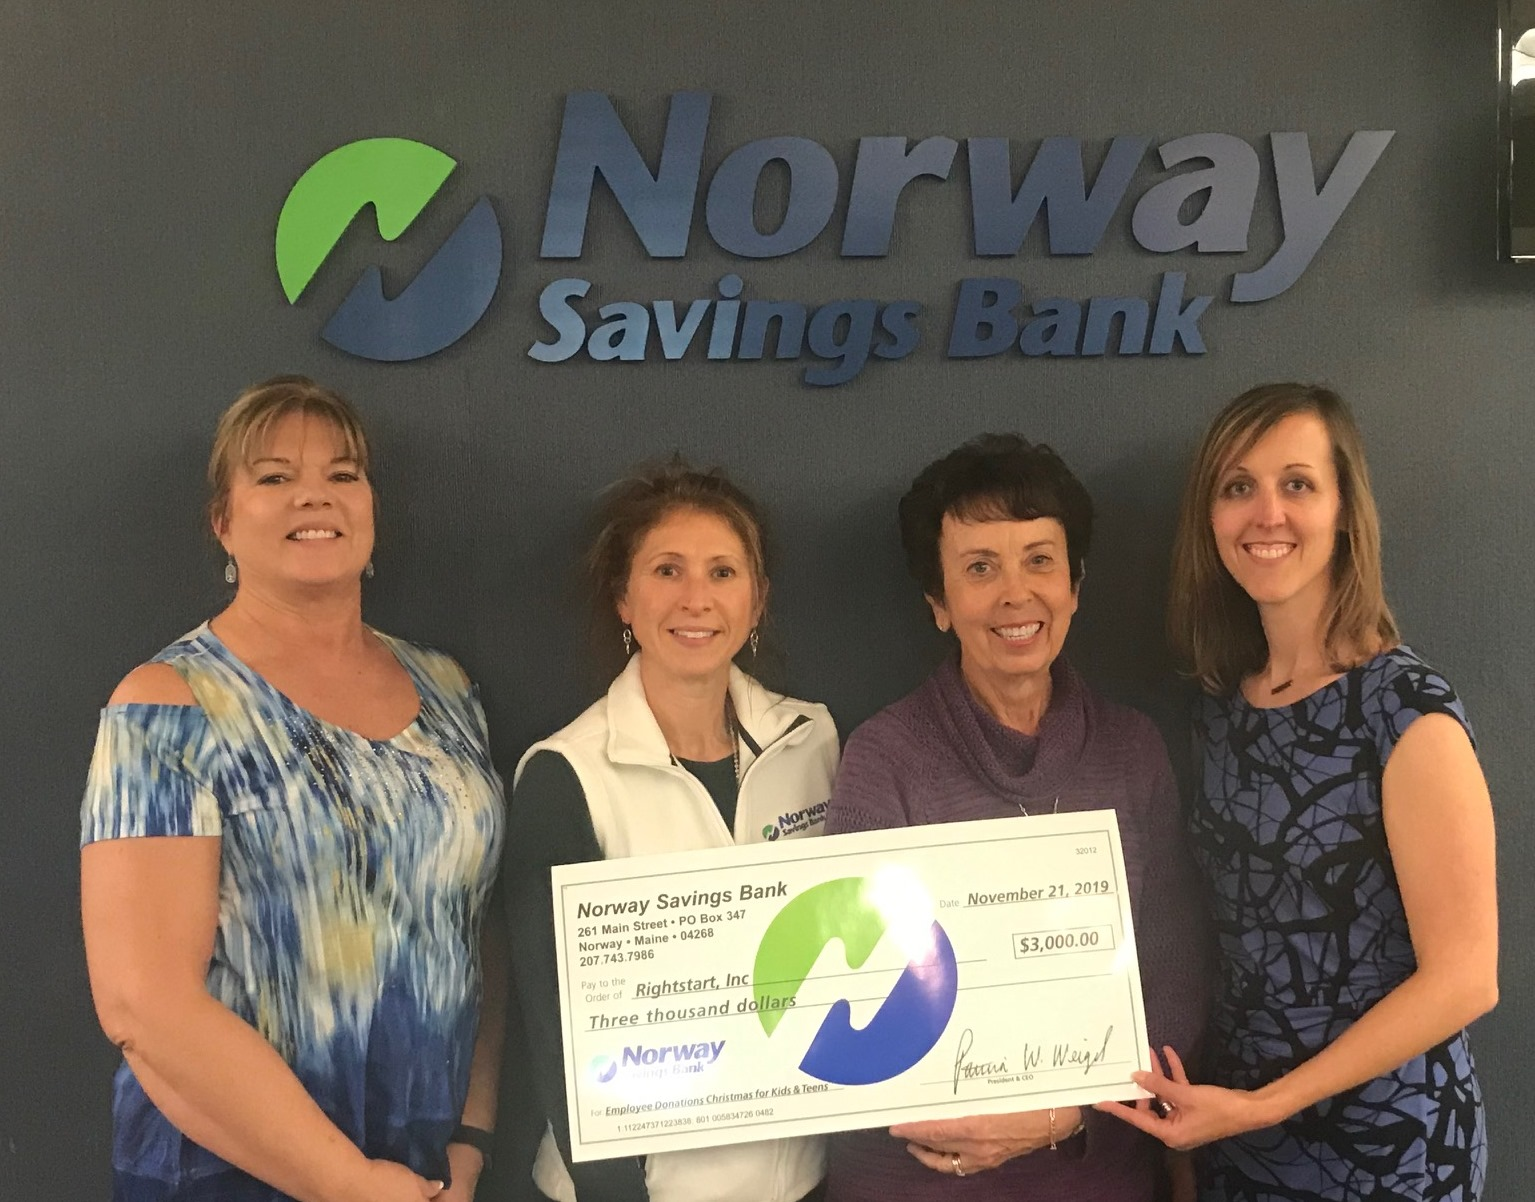 Four women presenting a large check